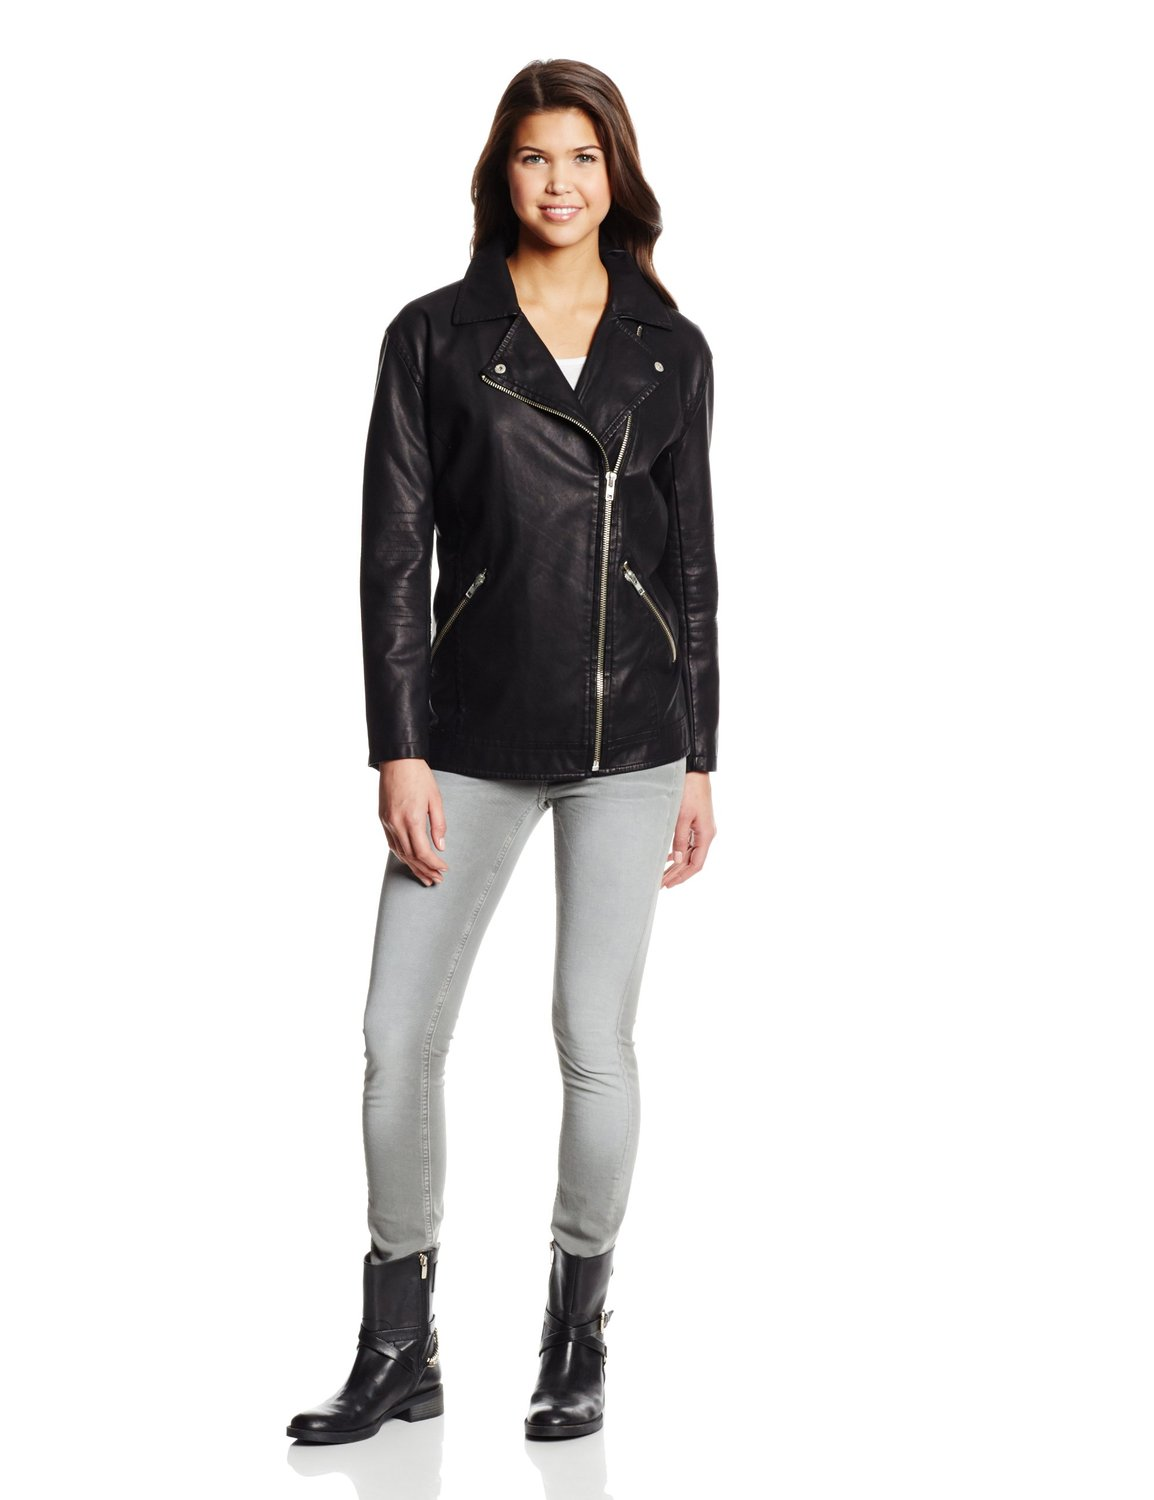 BB Dakota Women's Atleg Vegan Leather Moto Jacket at Amazon Women's Clothing store: